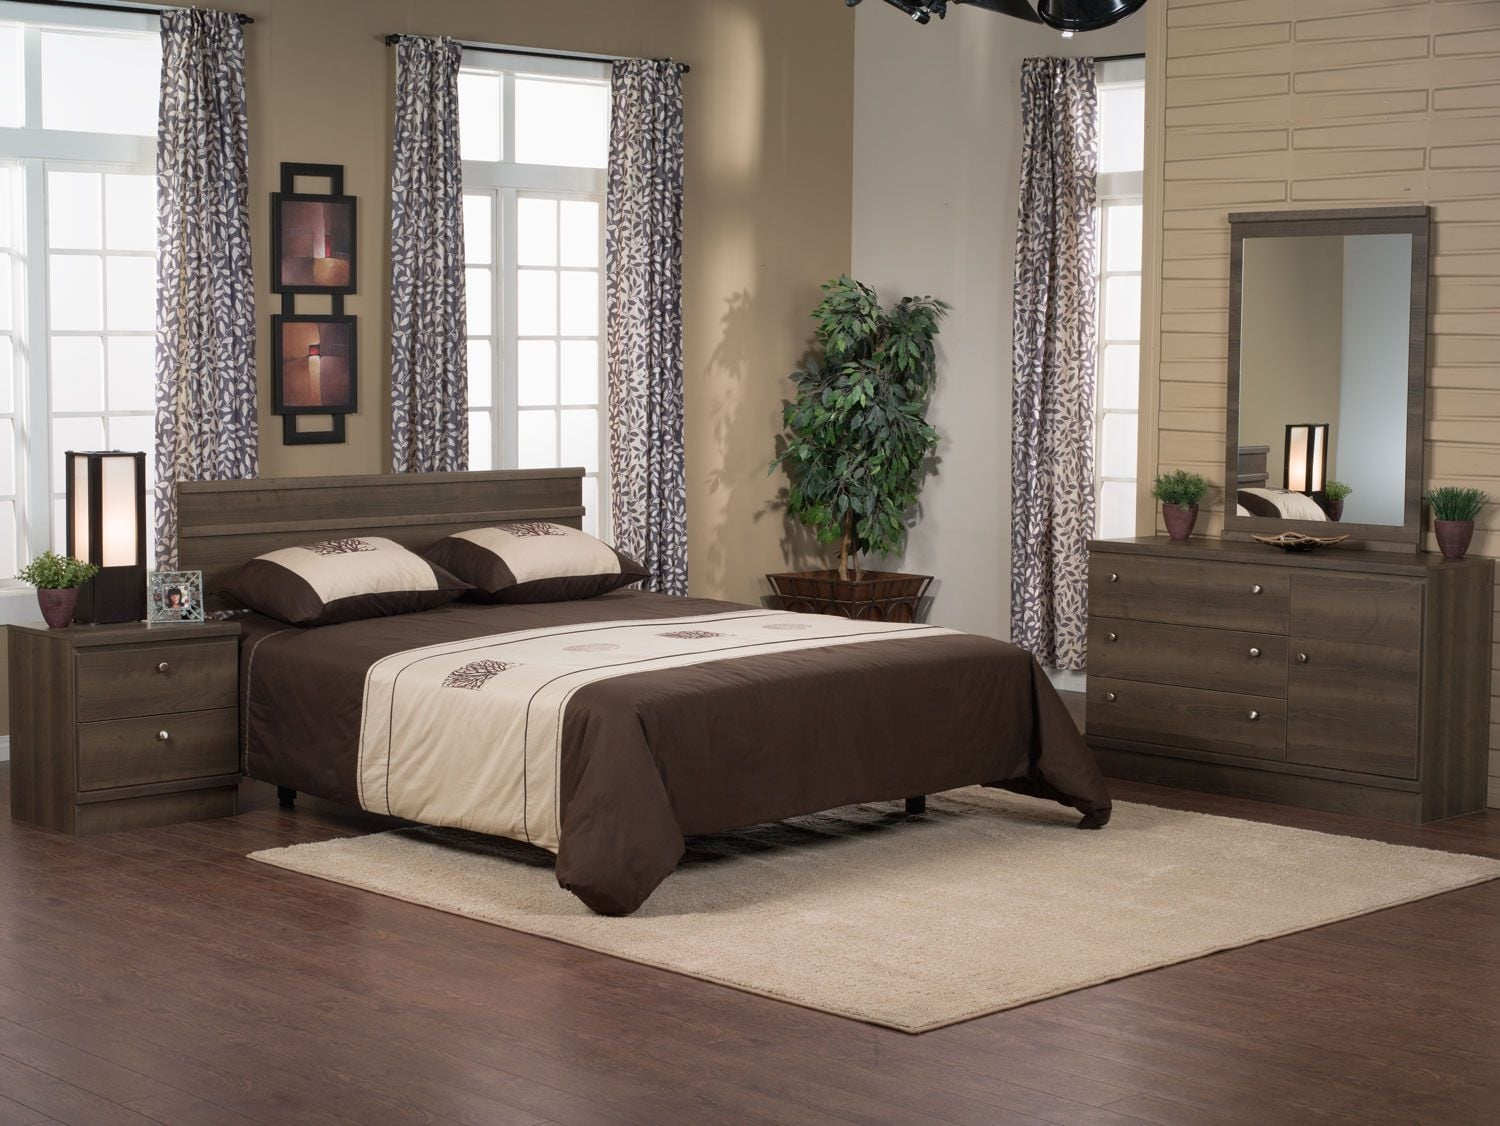 Bedroom Furniture - Loft 4-Piece Queen Bedroom Package – Grey-Brown